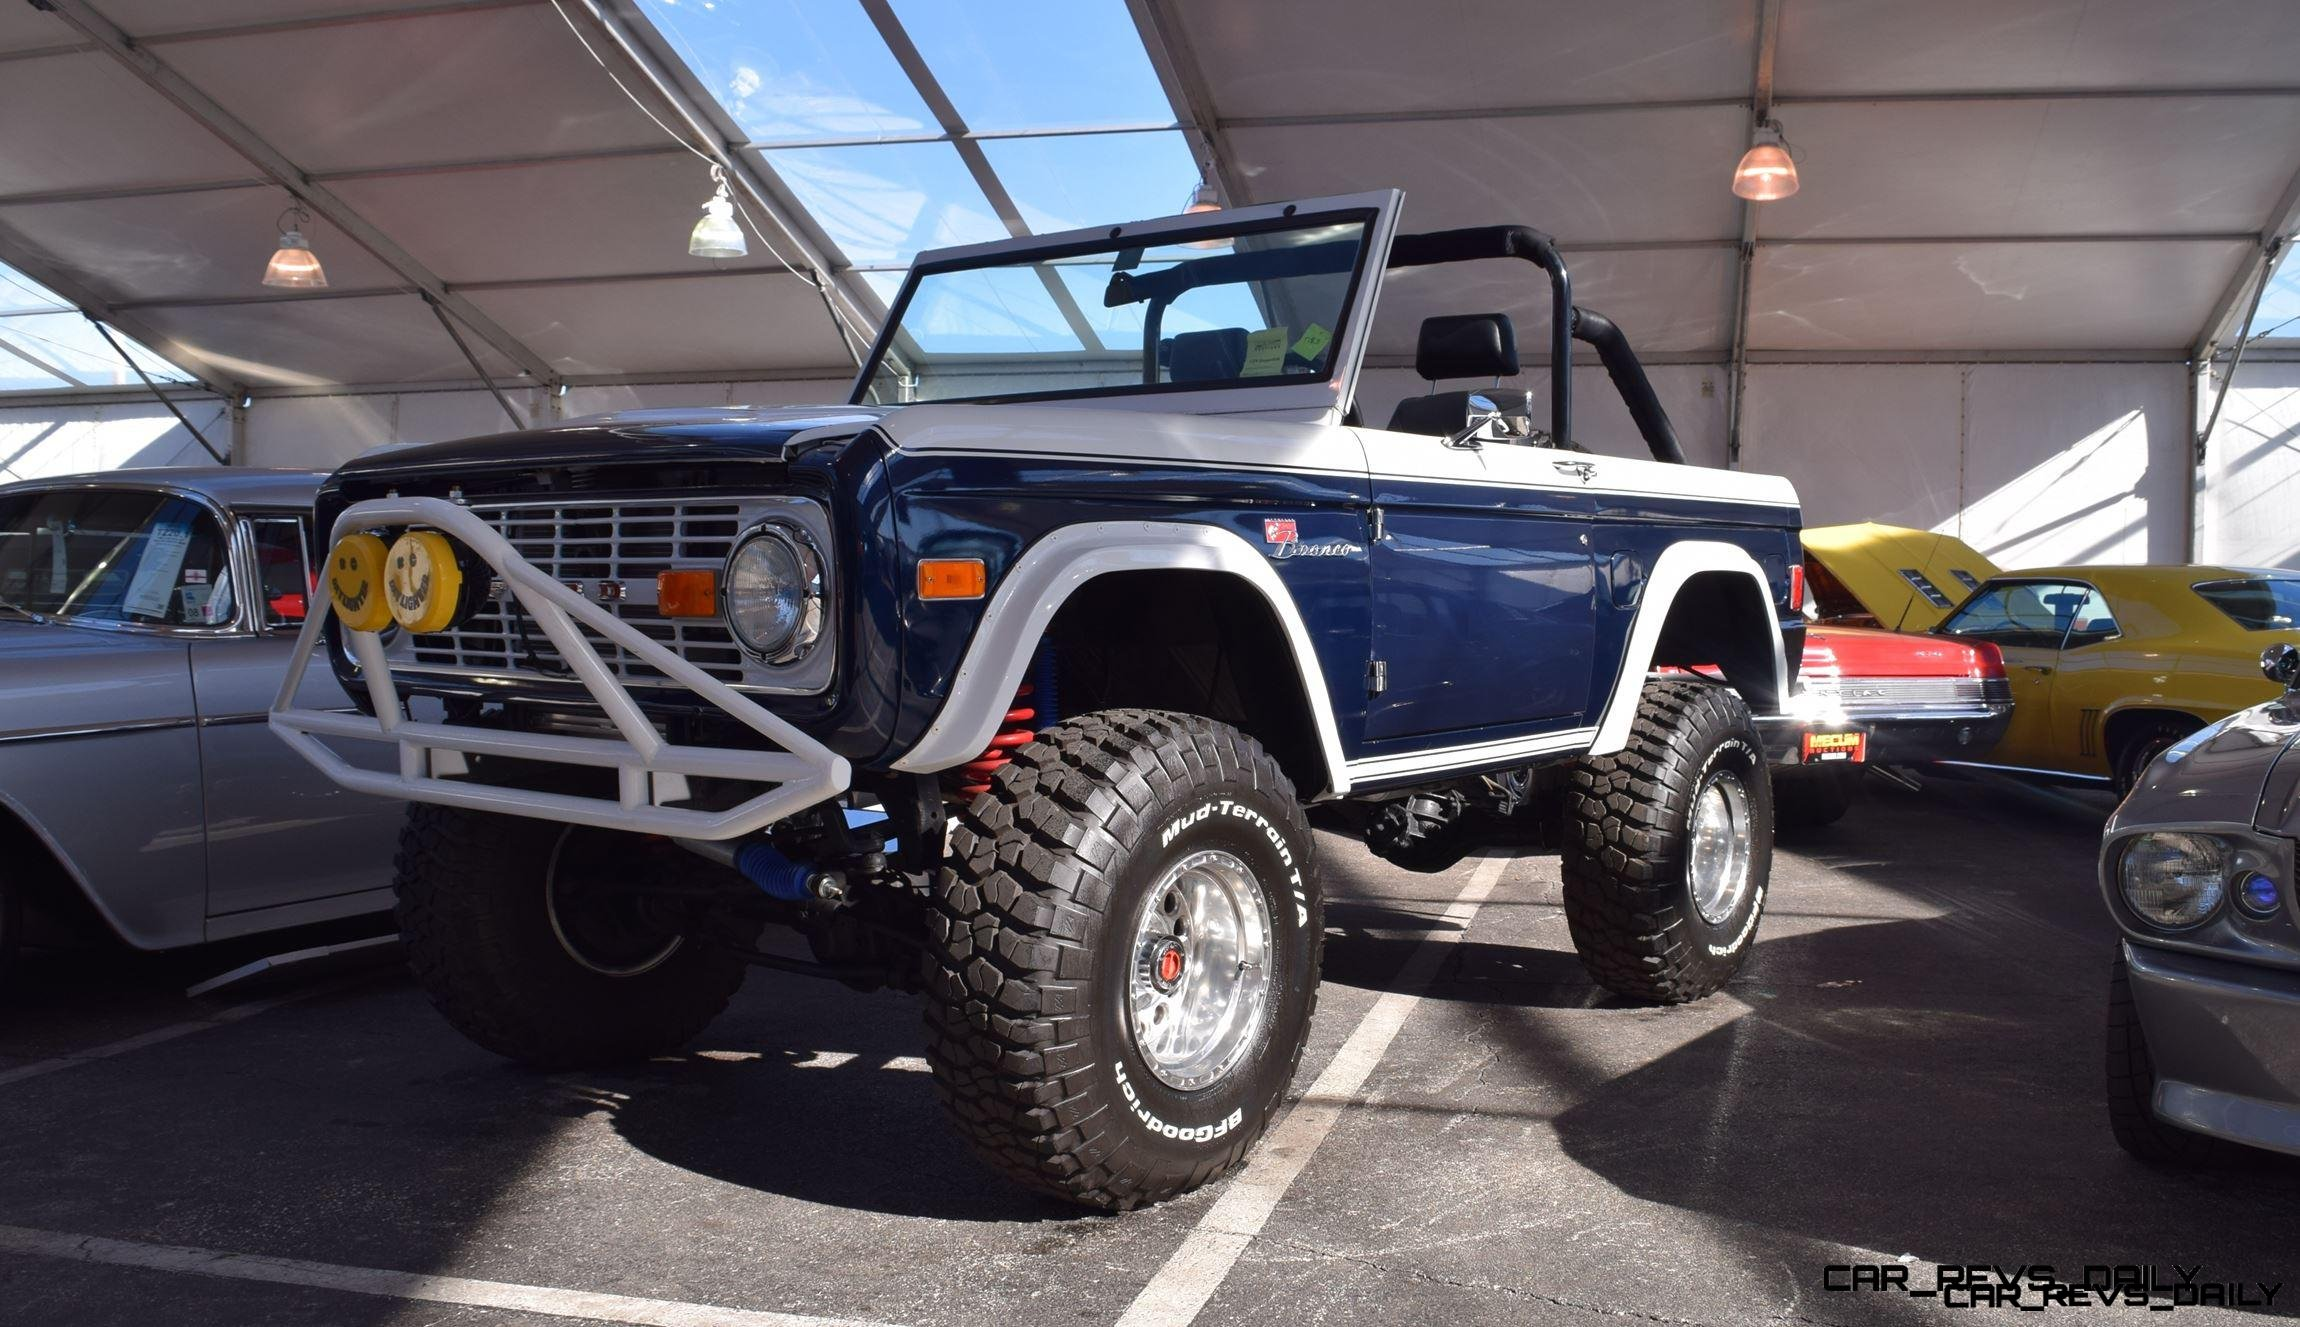 Mecum 2016 1977 Ford Bronco Sport 50 Roadster In White Blue 1970 Police Car